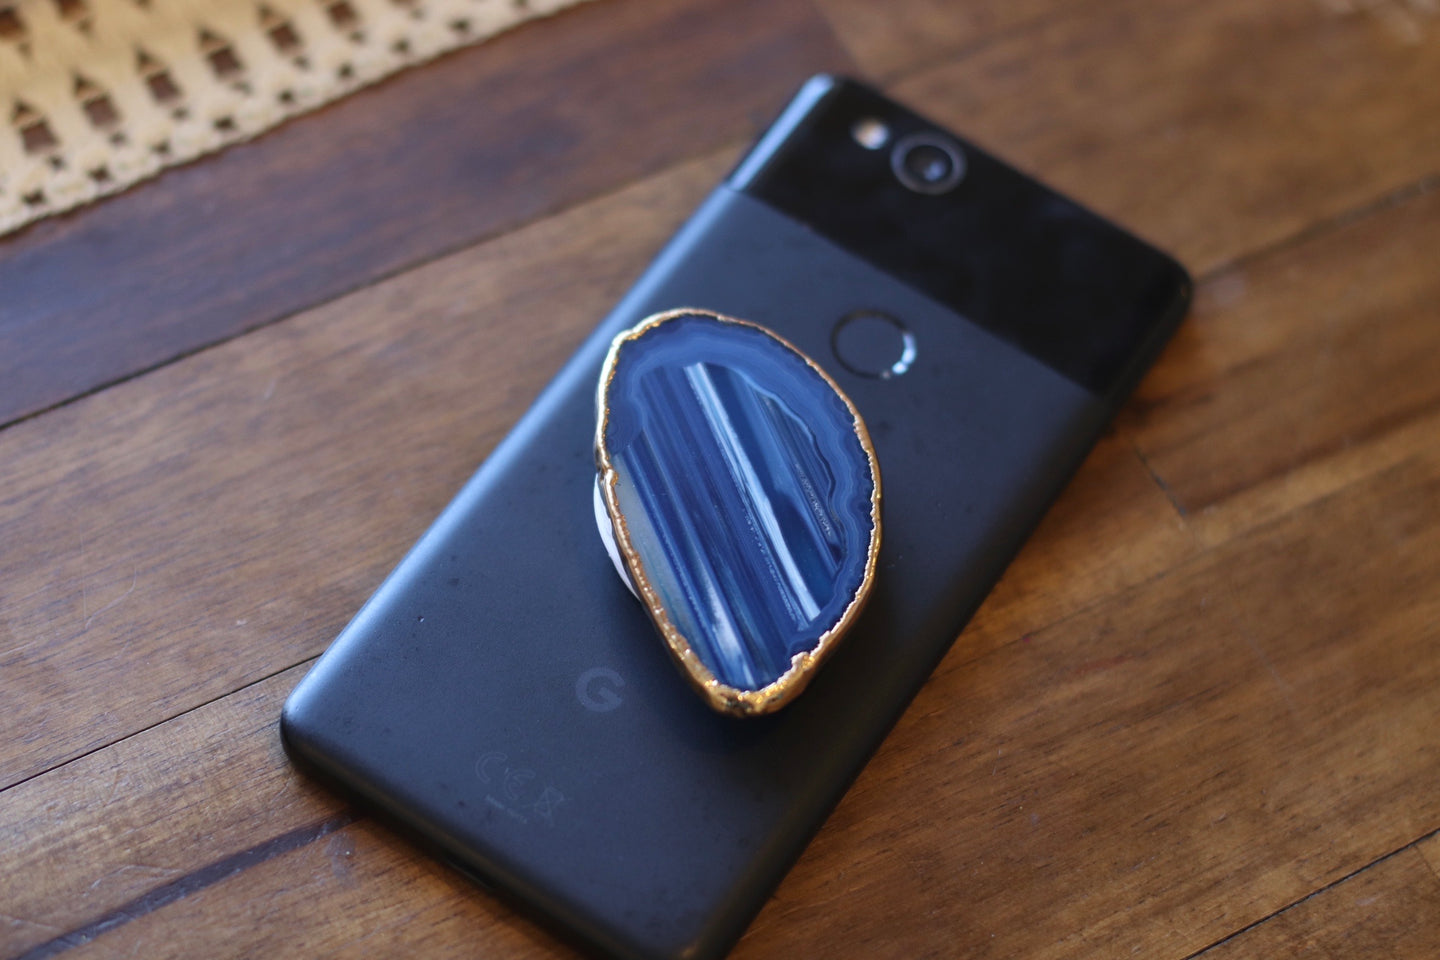 The Agate Slice Phone Grip